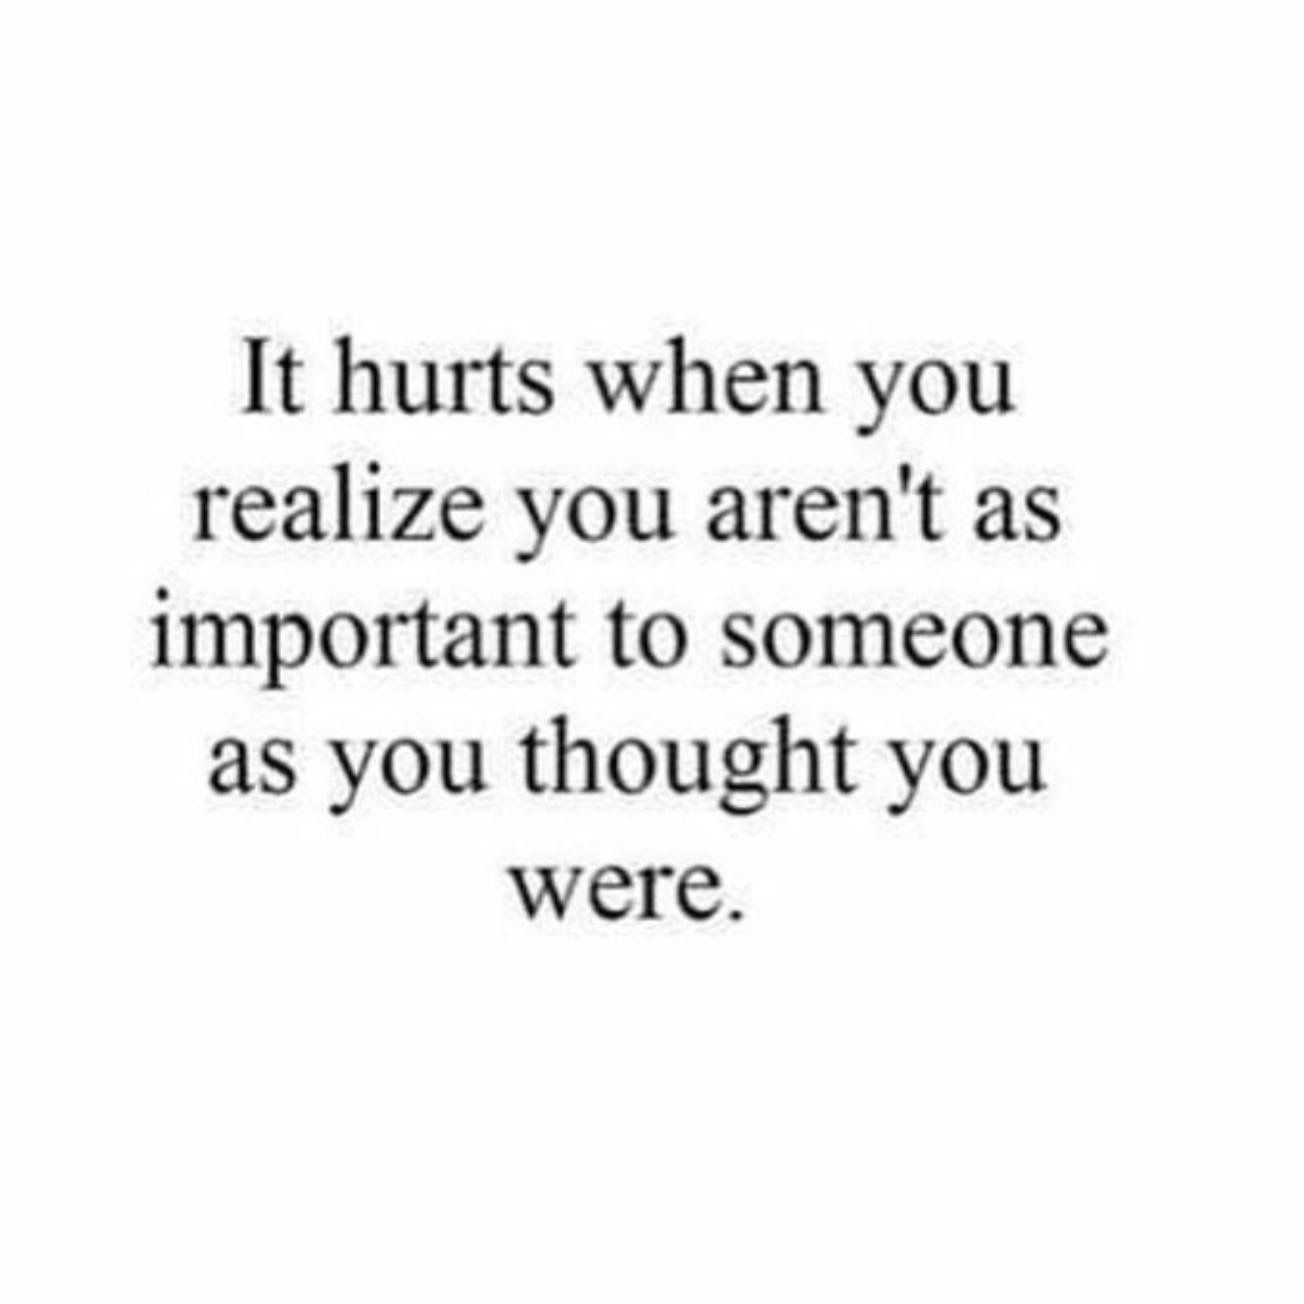 Sad Hurtful Quotes: Deep Thoughts And Thoughts